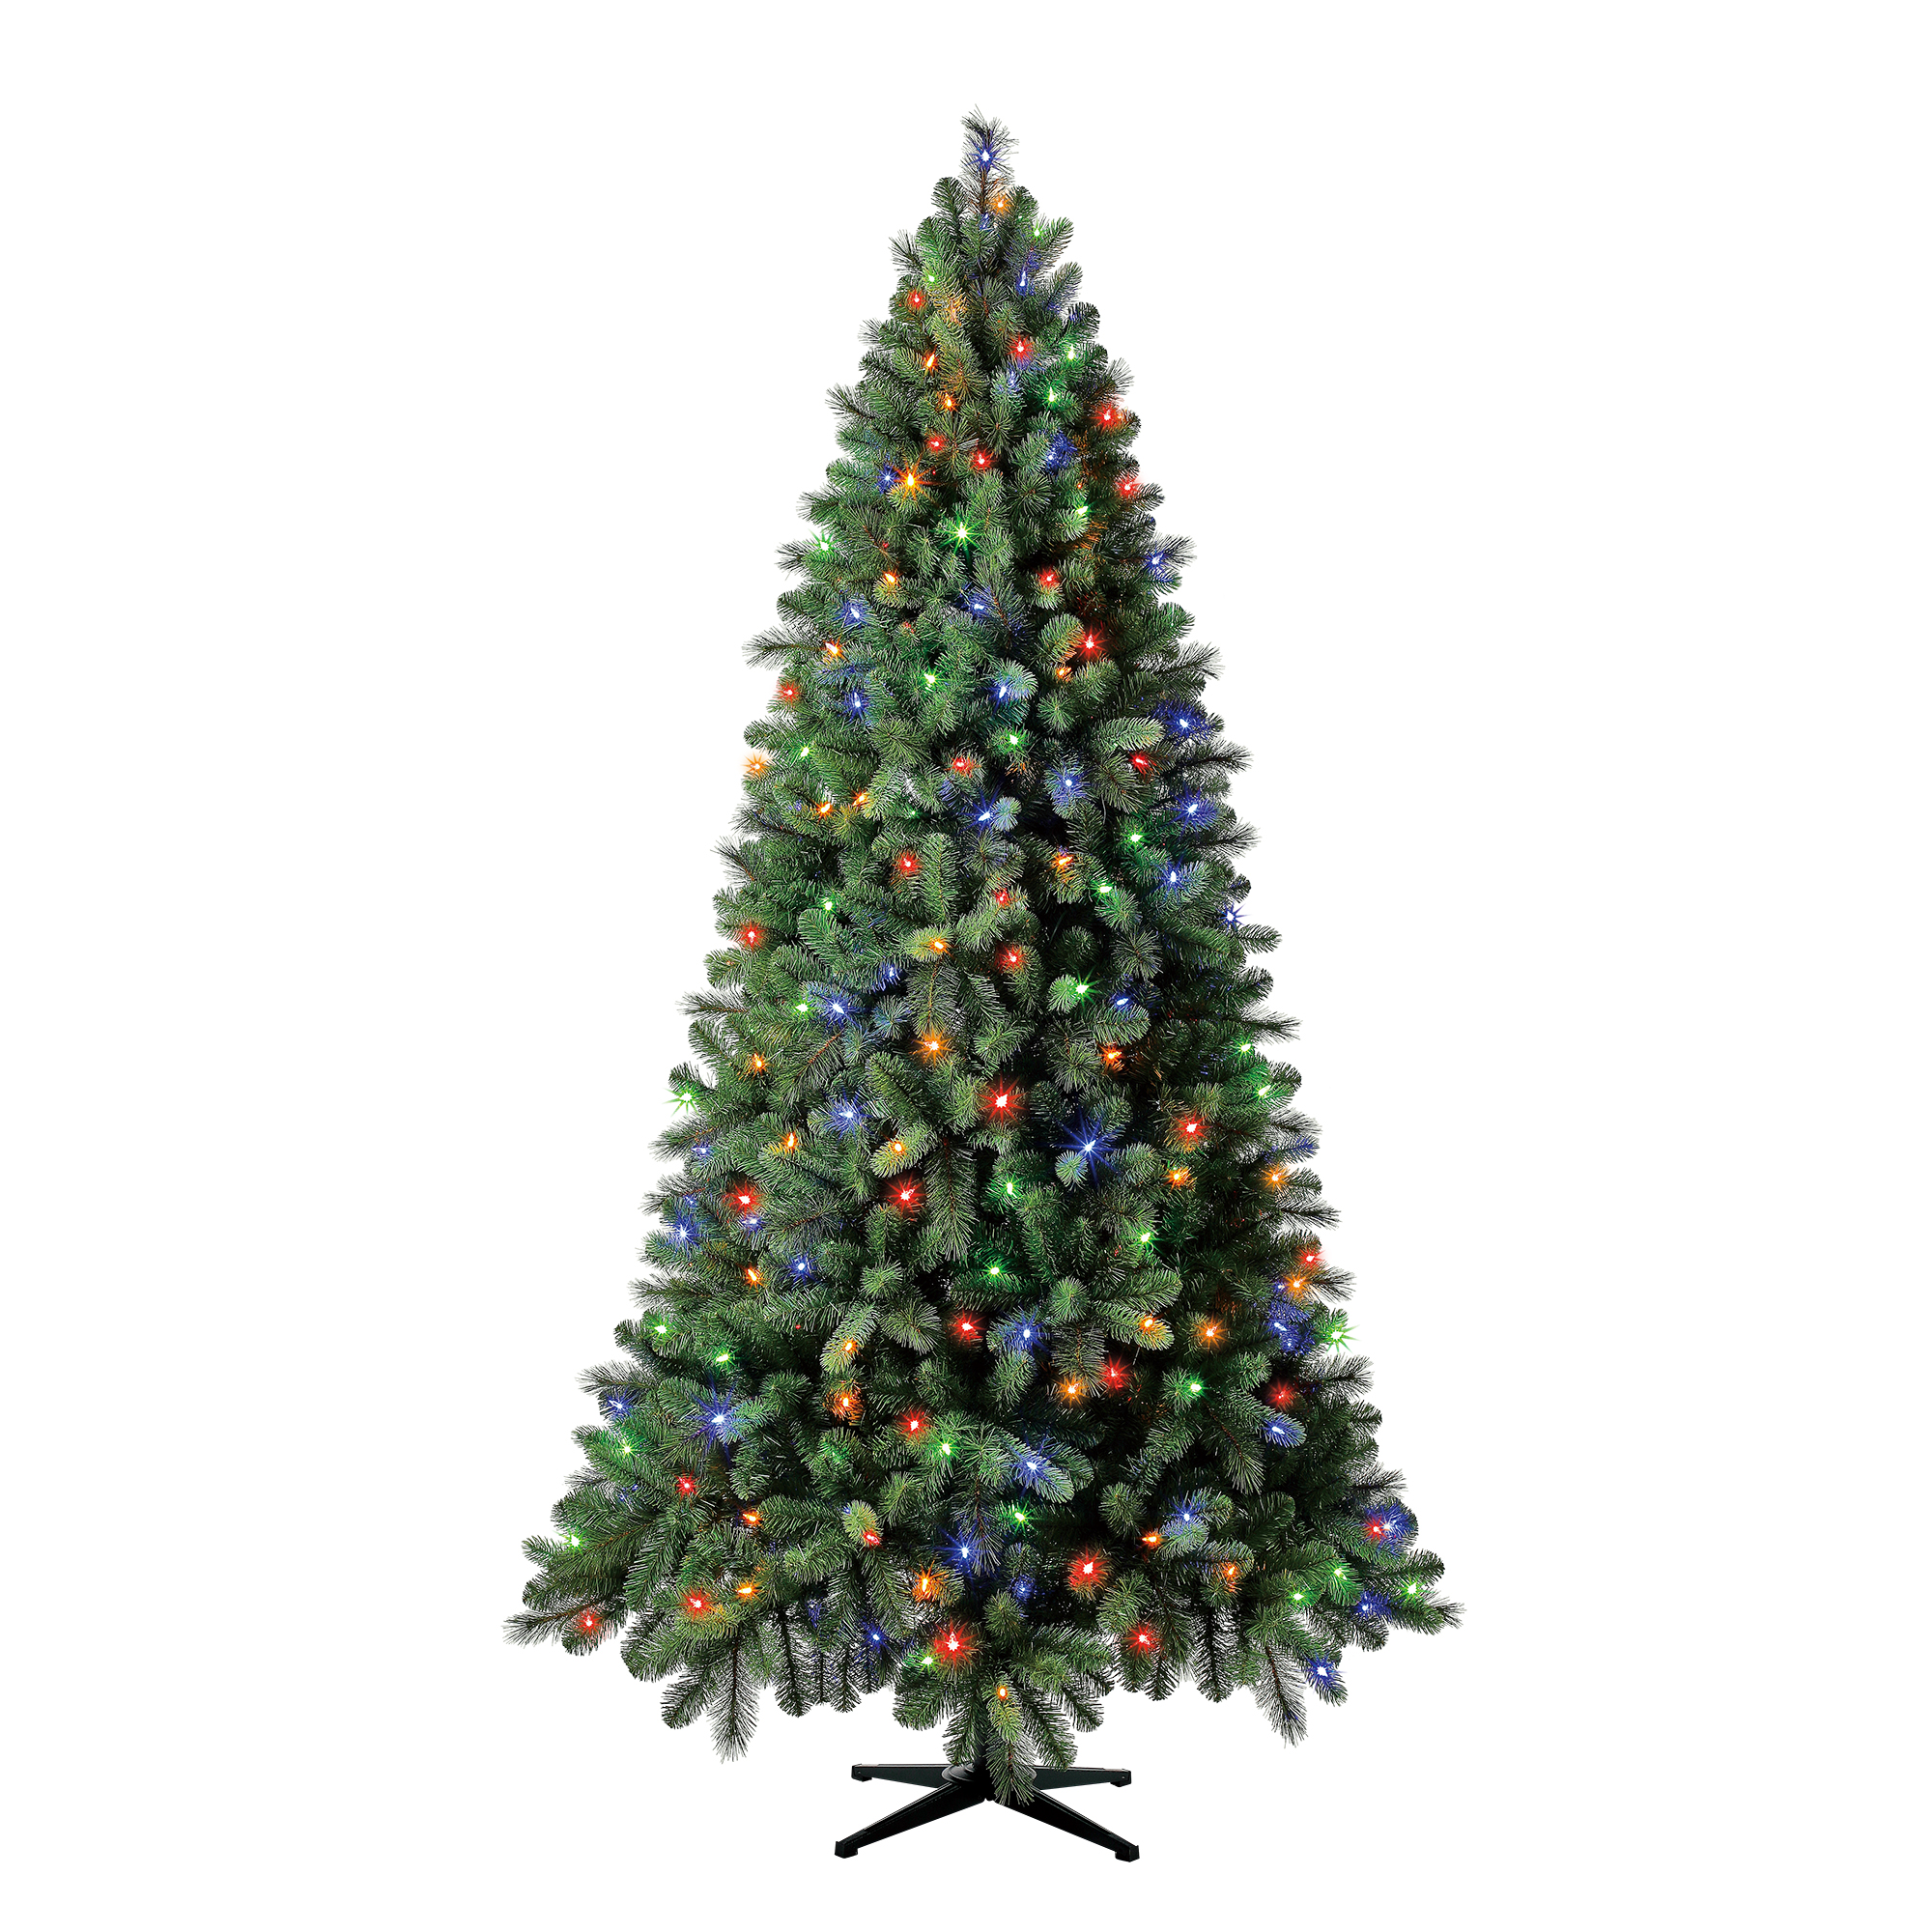 Evergreen Classics Christmas Tree Coupon Code Walmart Black Friday 2020